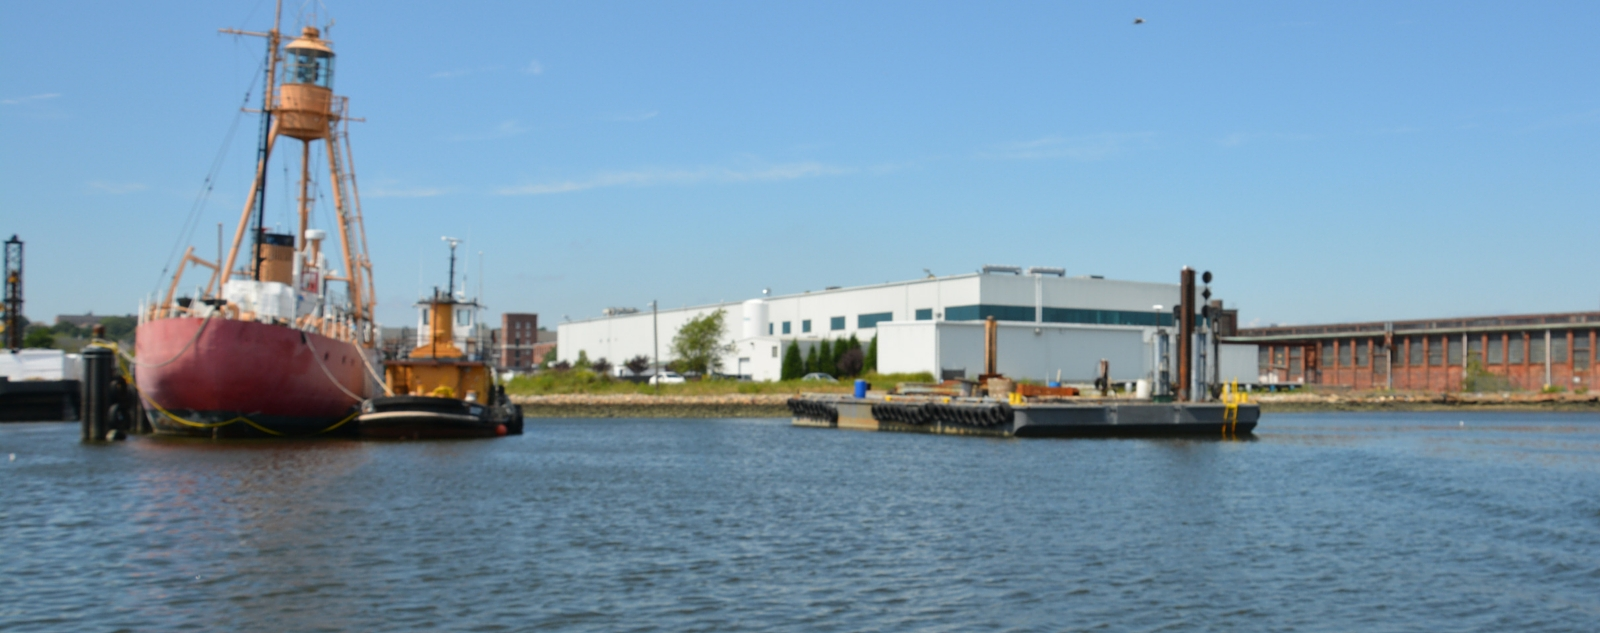 Seatrade Announces Acquisition of Scallop Processing Facility